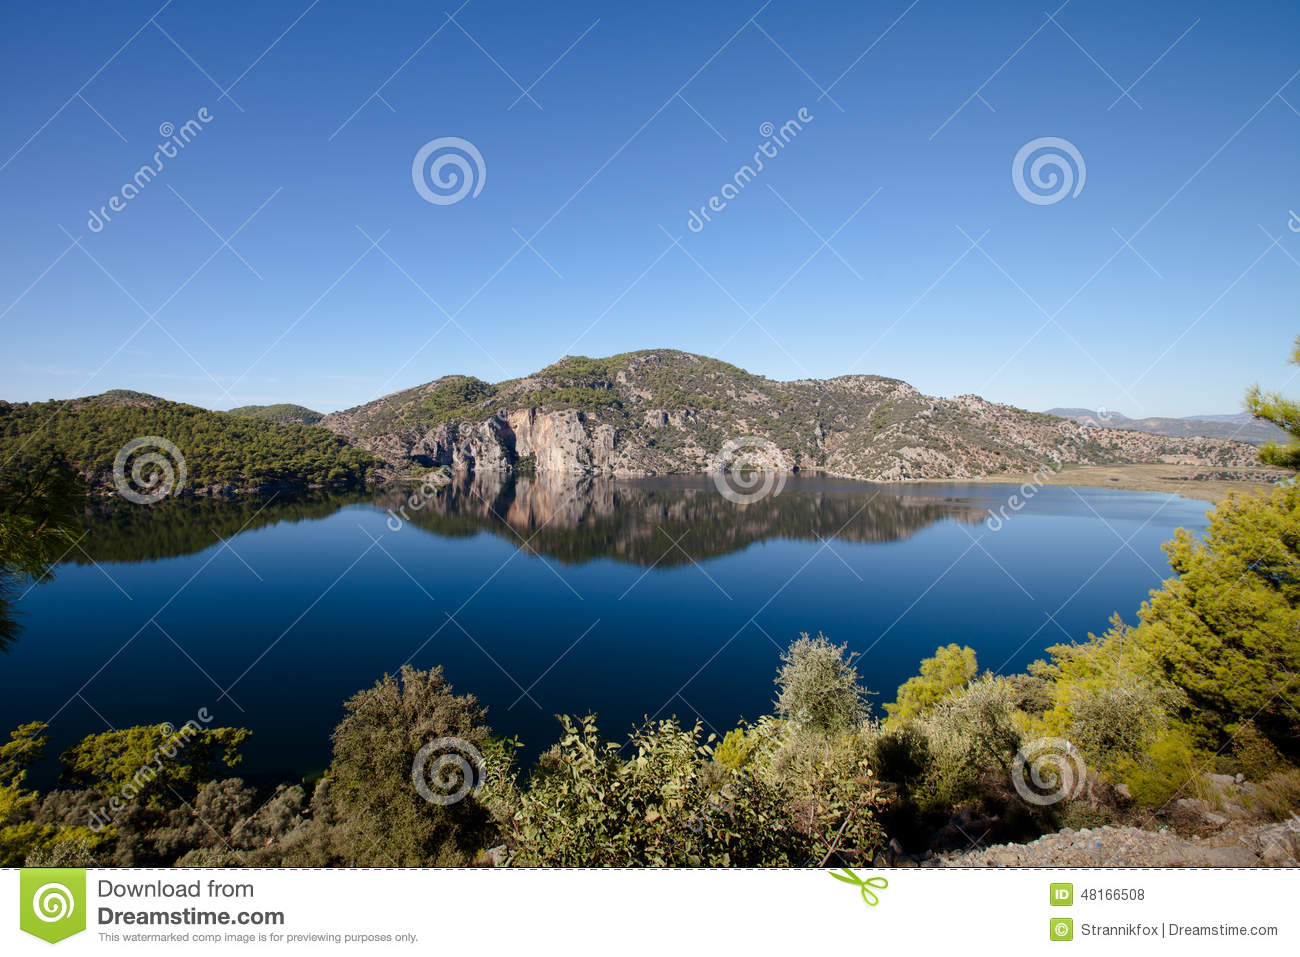 Beautiful Lake Surrounded By Mountains Stock Photo - Image: 48166508